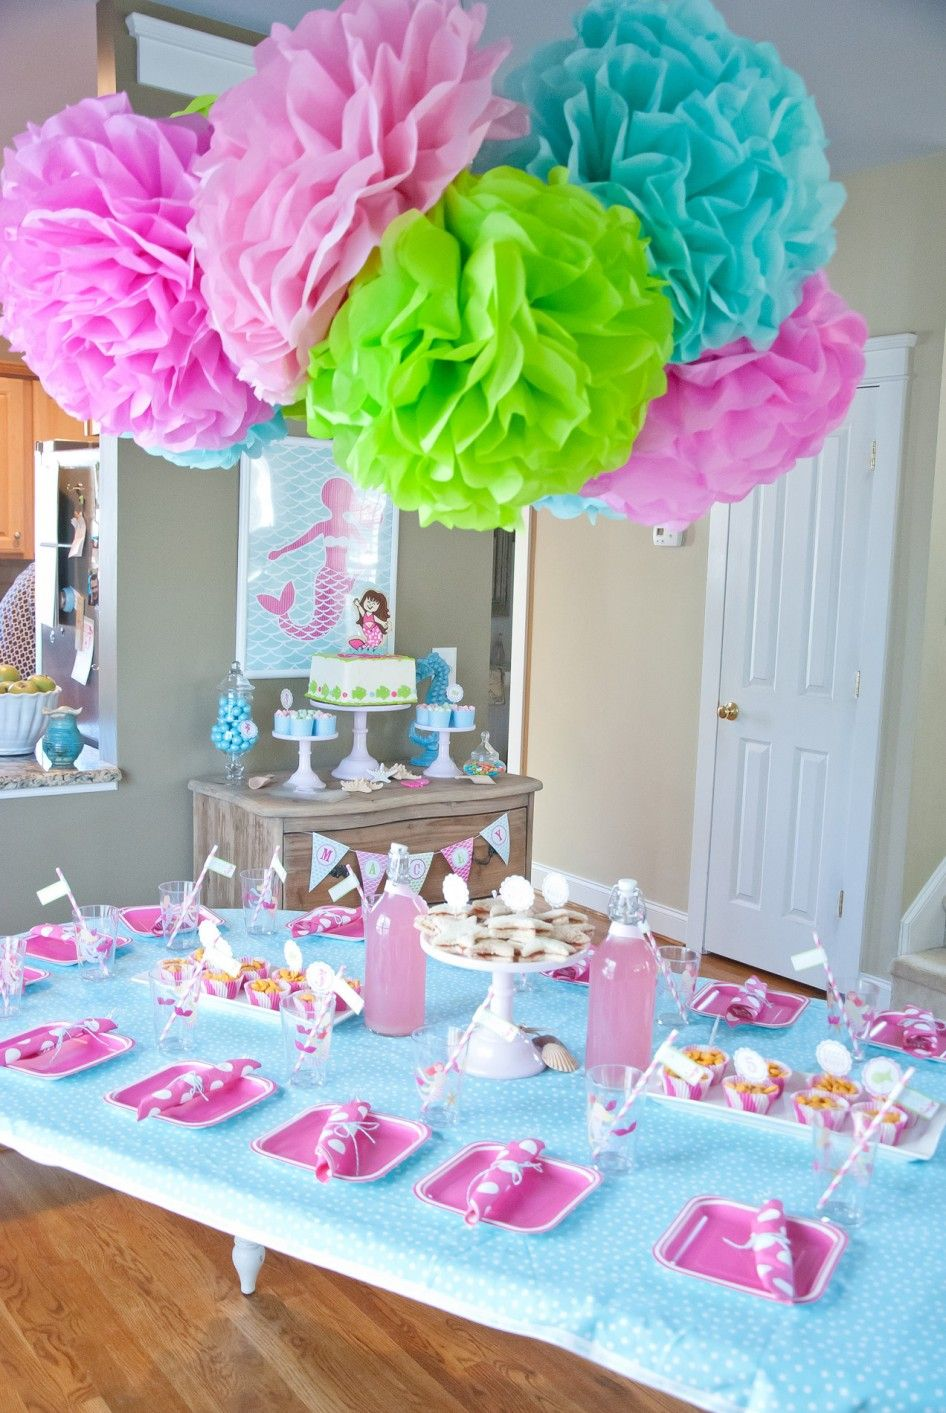 Amusing Birthday Party Table Decoration Ideas with Birthday Party